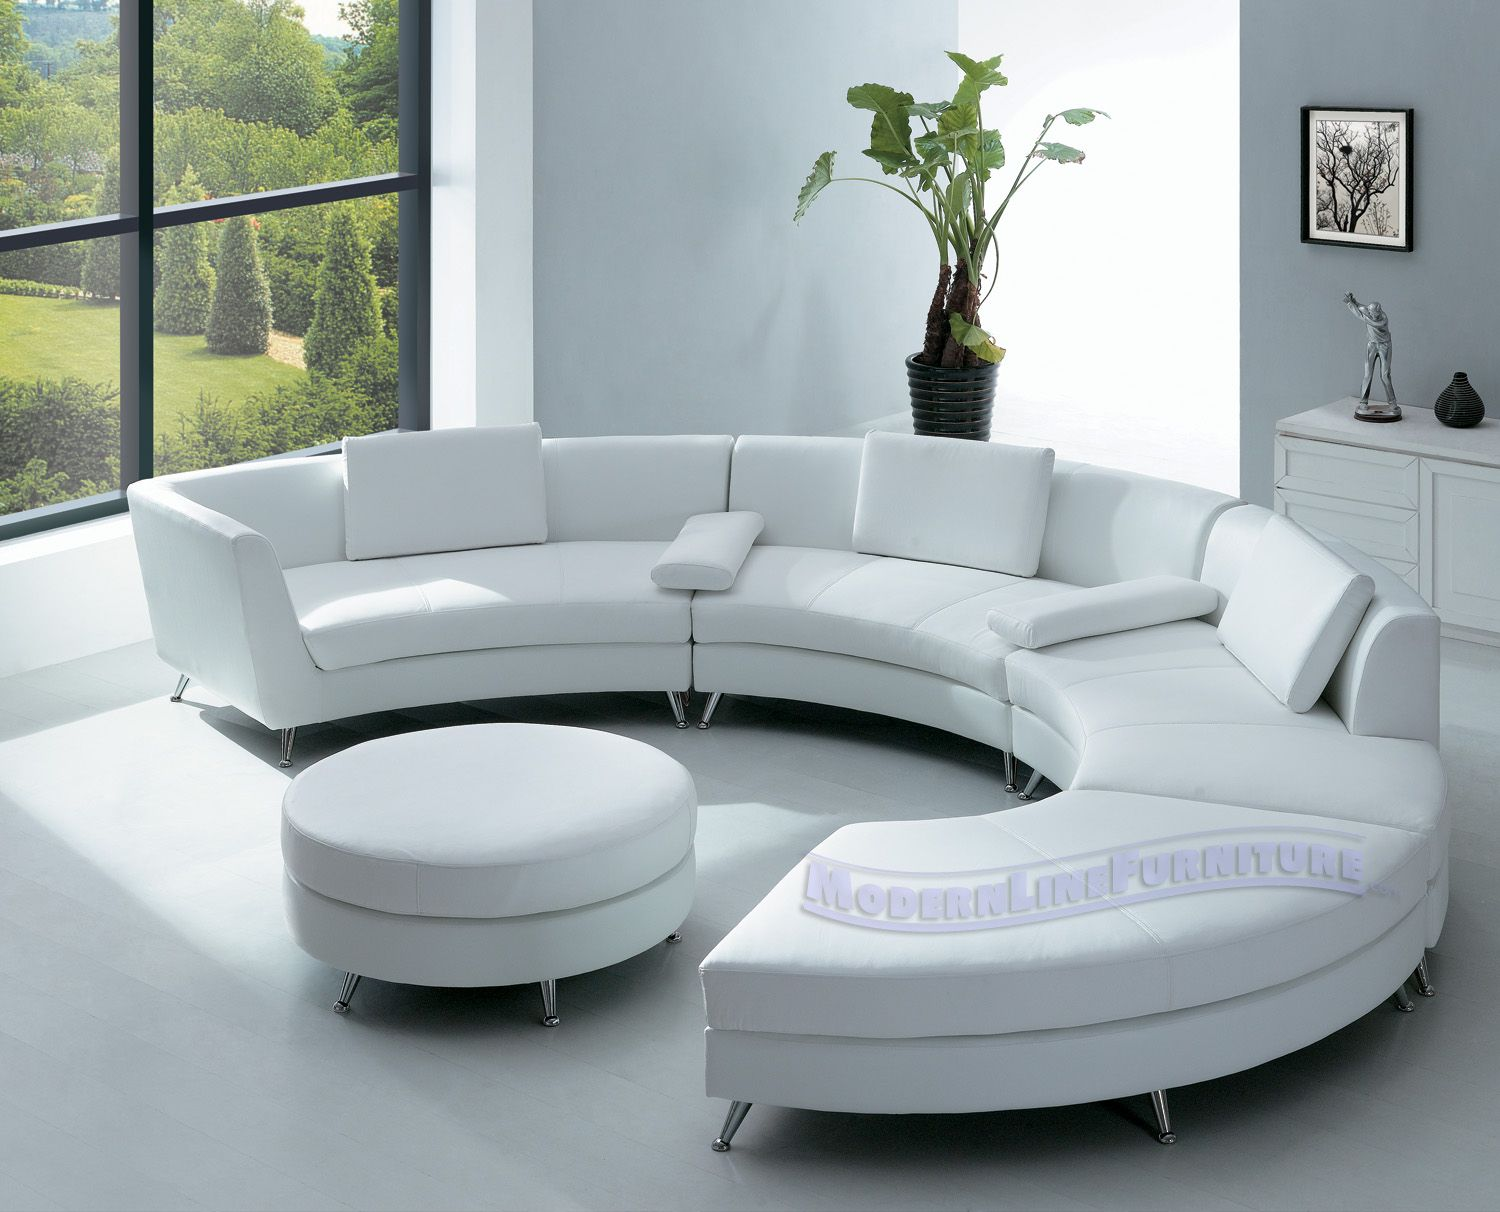 White Sofa Furniture for Small Living Room Home Design  Modern Living Room  Furniture Round Sofa Best Photo 01Best 20  Sofa discount ideas on Pinterest   Rot poodles  . Modern Living Standard Furniture Victoria Bc. Home Design Ideas